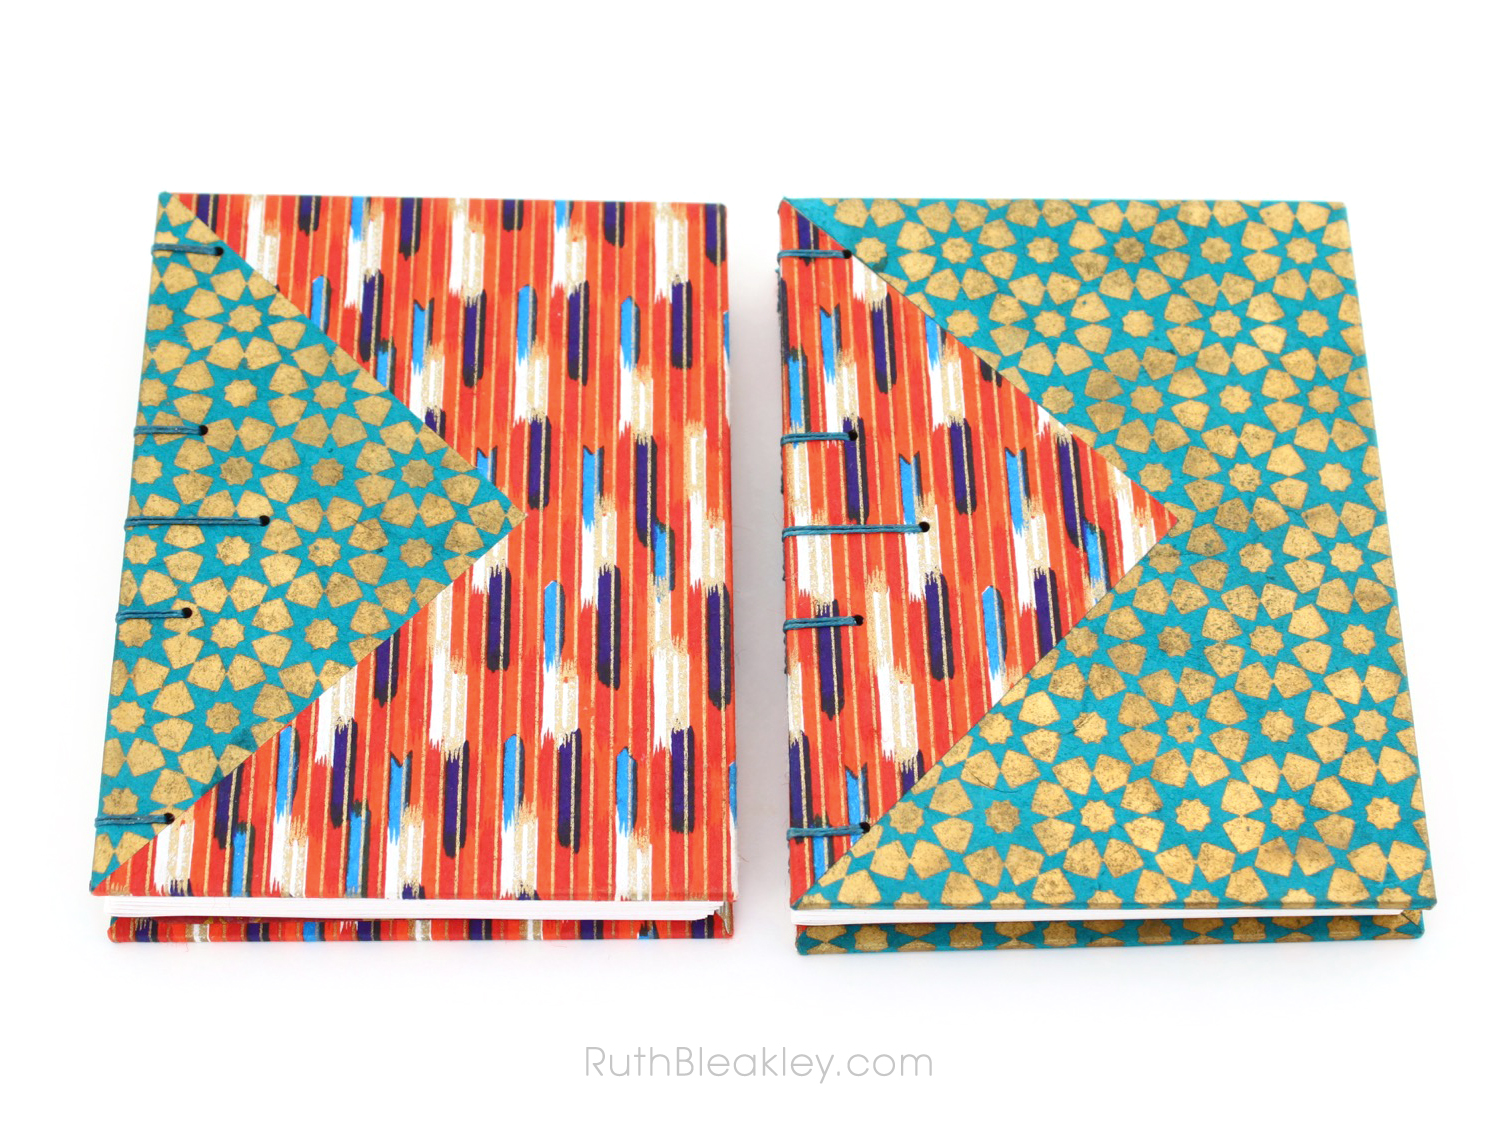 Chiyogami Twin Journals with Colorful Triangle Inlays handmade by Ruth Bleakley - 8